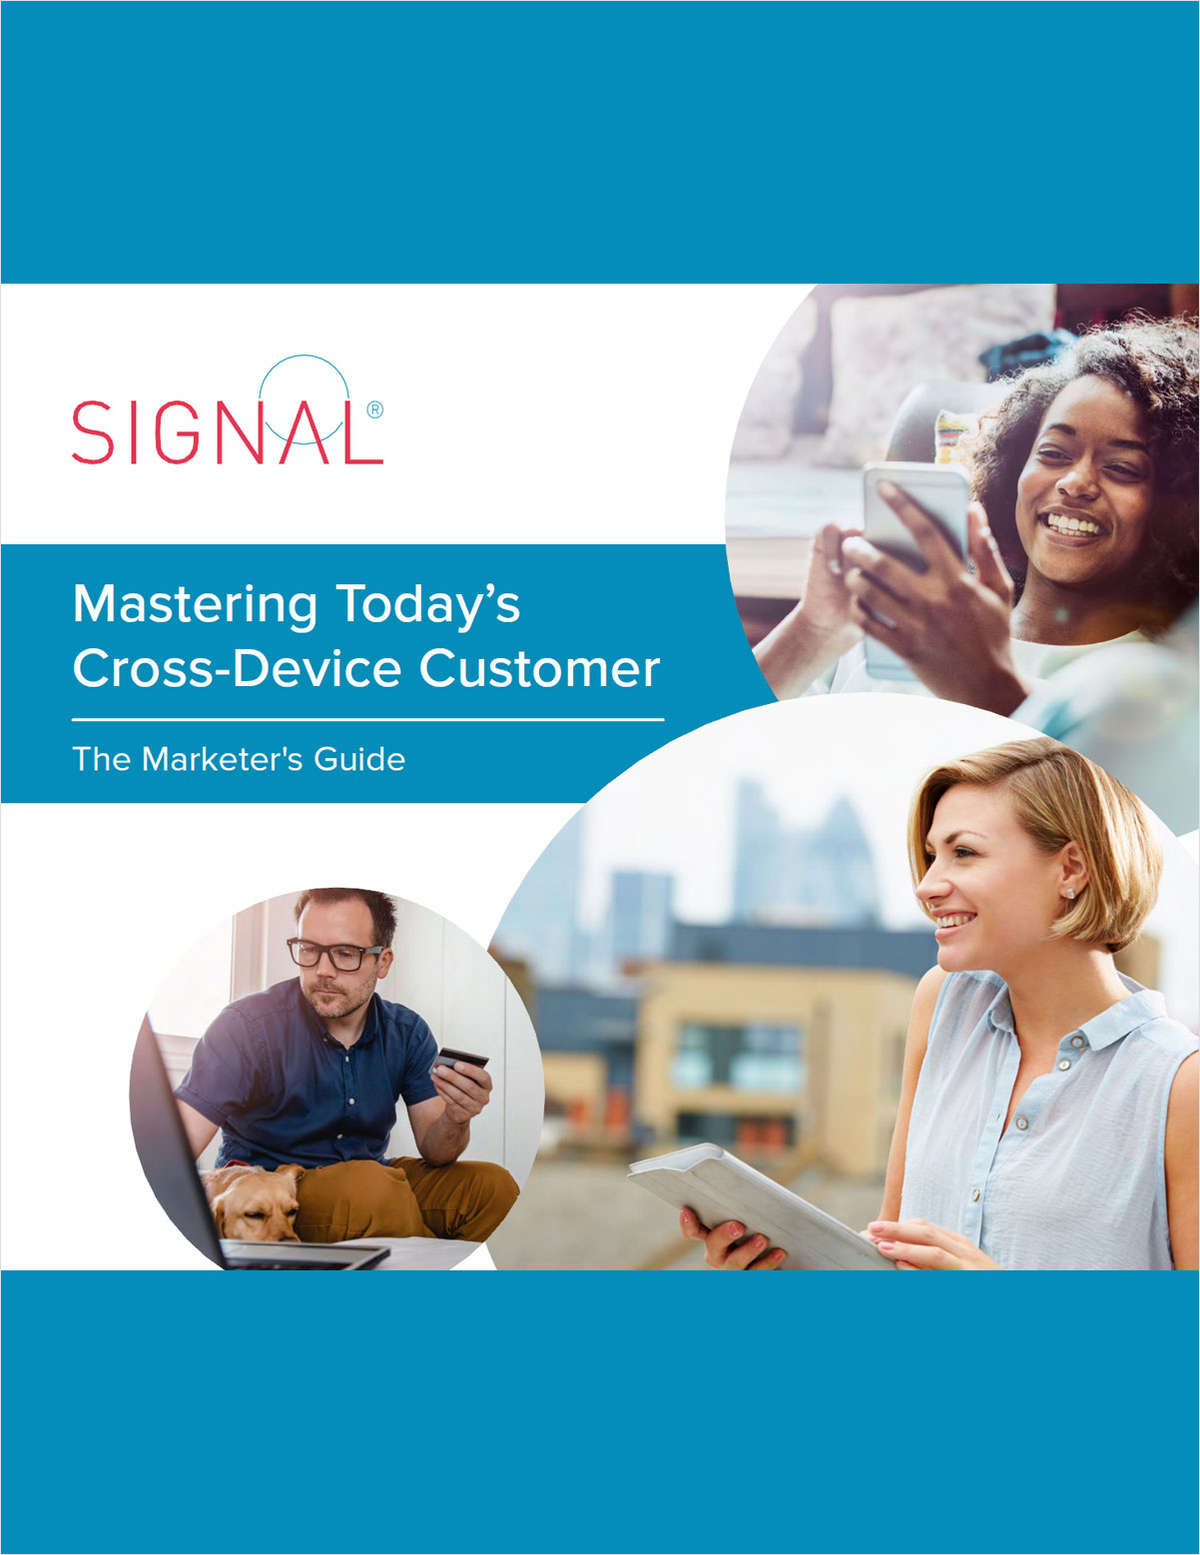 The Marketer's Guide to Mastering Today's Cross-Device Customer